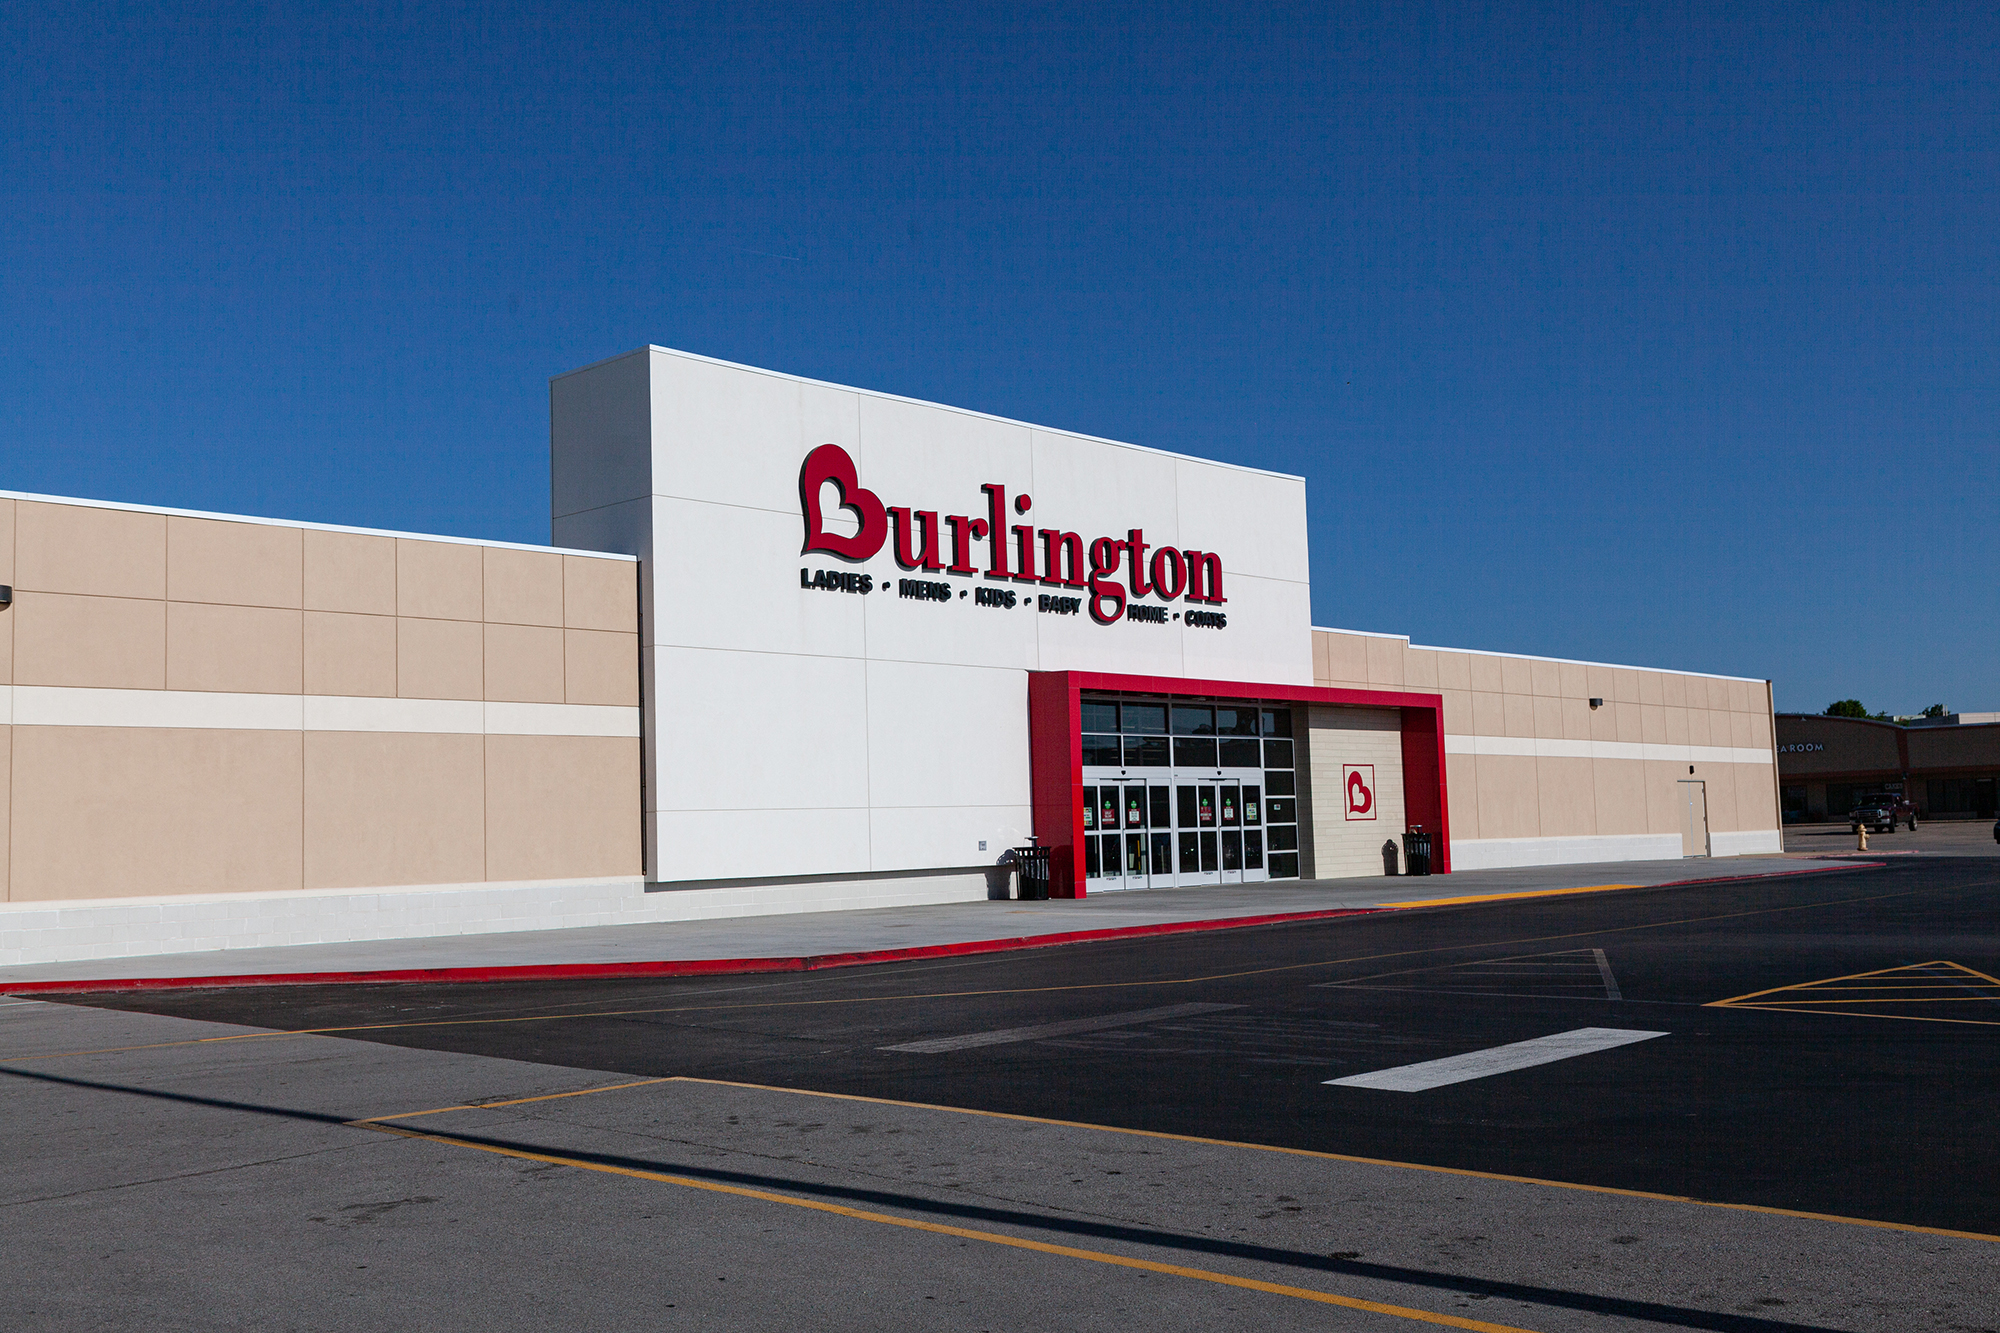 Photo of Burlington store exterior